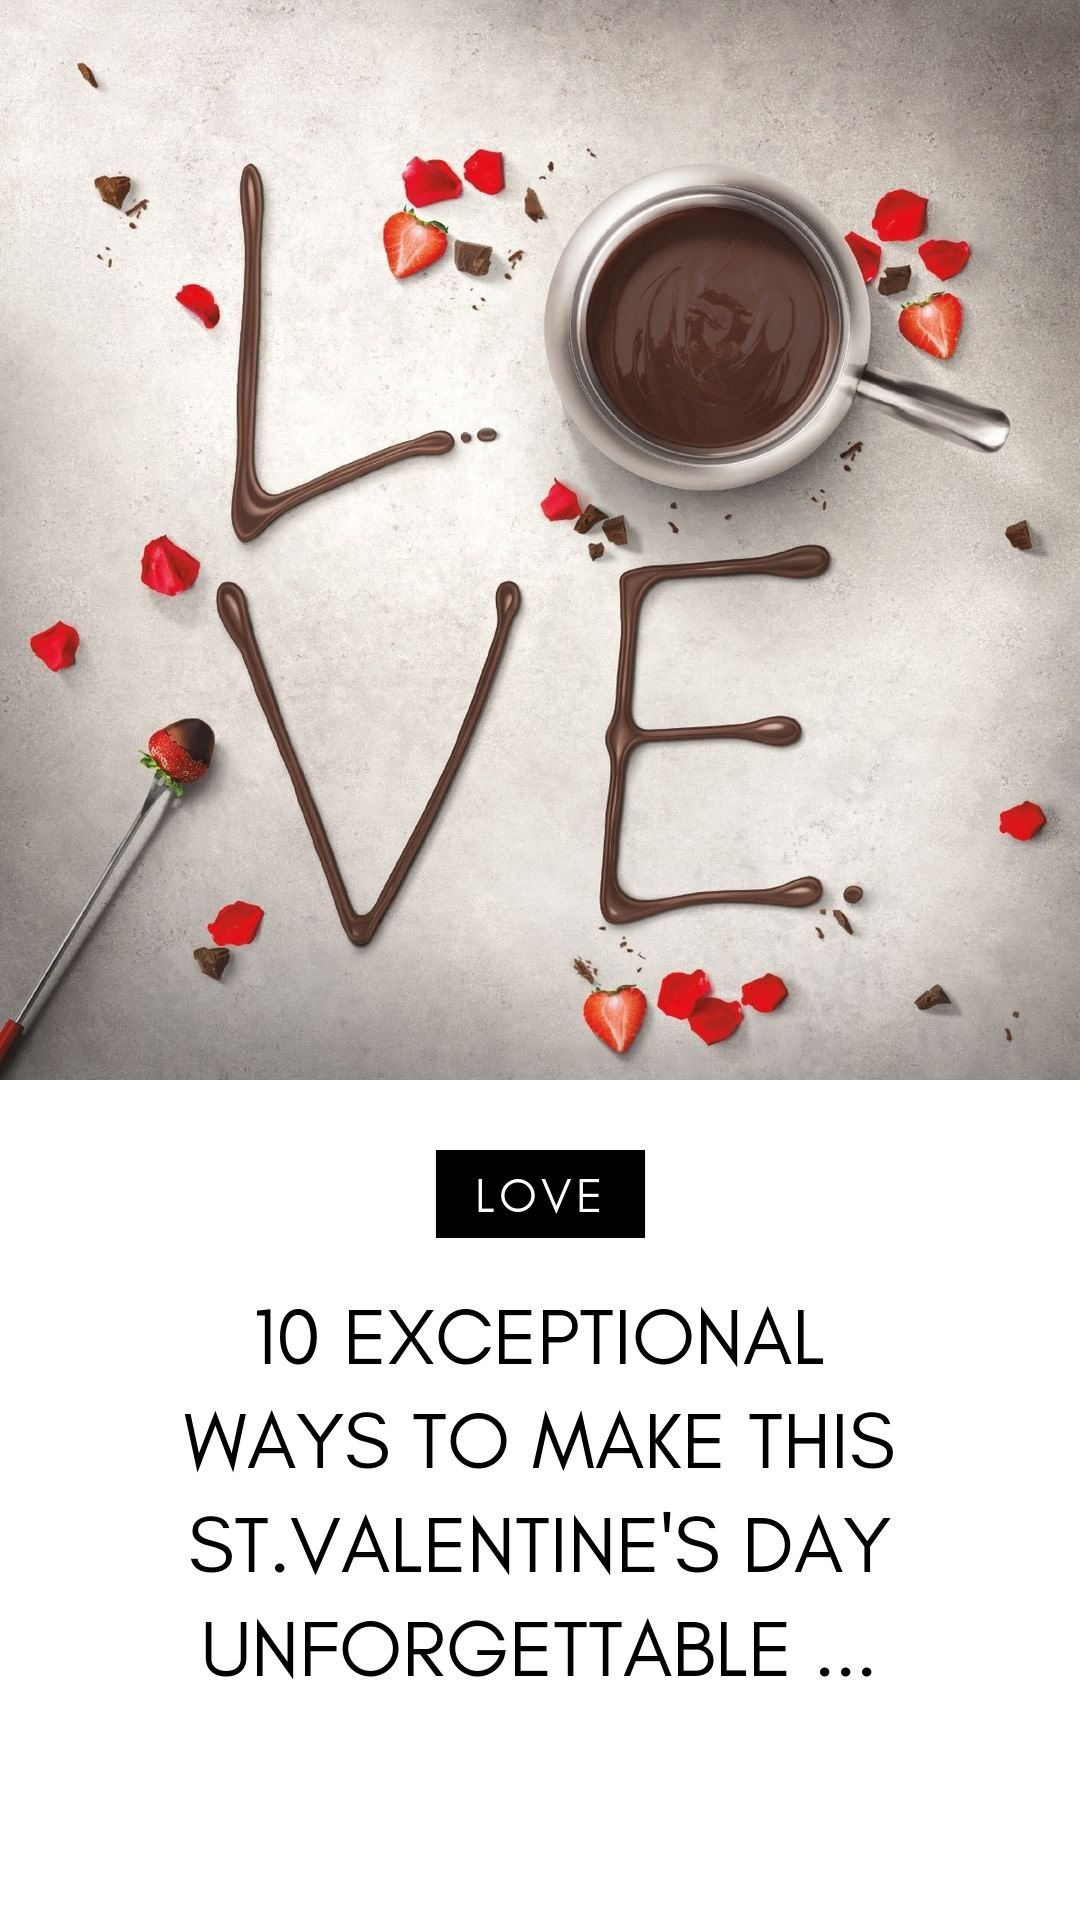 10 Exceptional 🙌 Ways to Make This 👇👈 St Valentine's Day